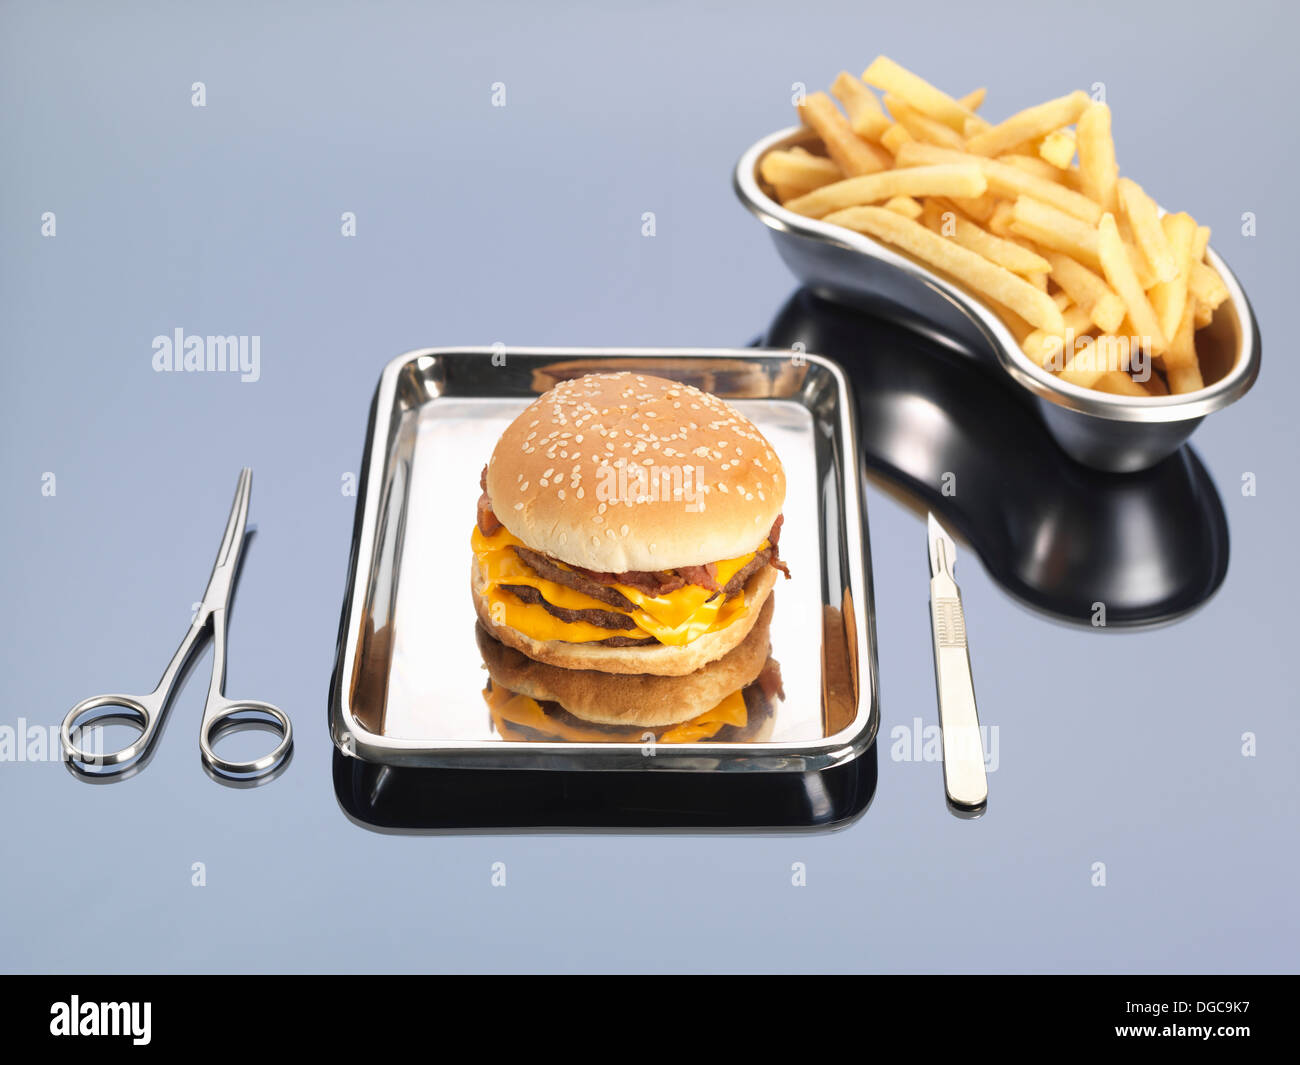 Burger and fries sitting in surgical trays illustrating unhealthy diet - Stock Image